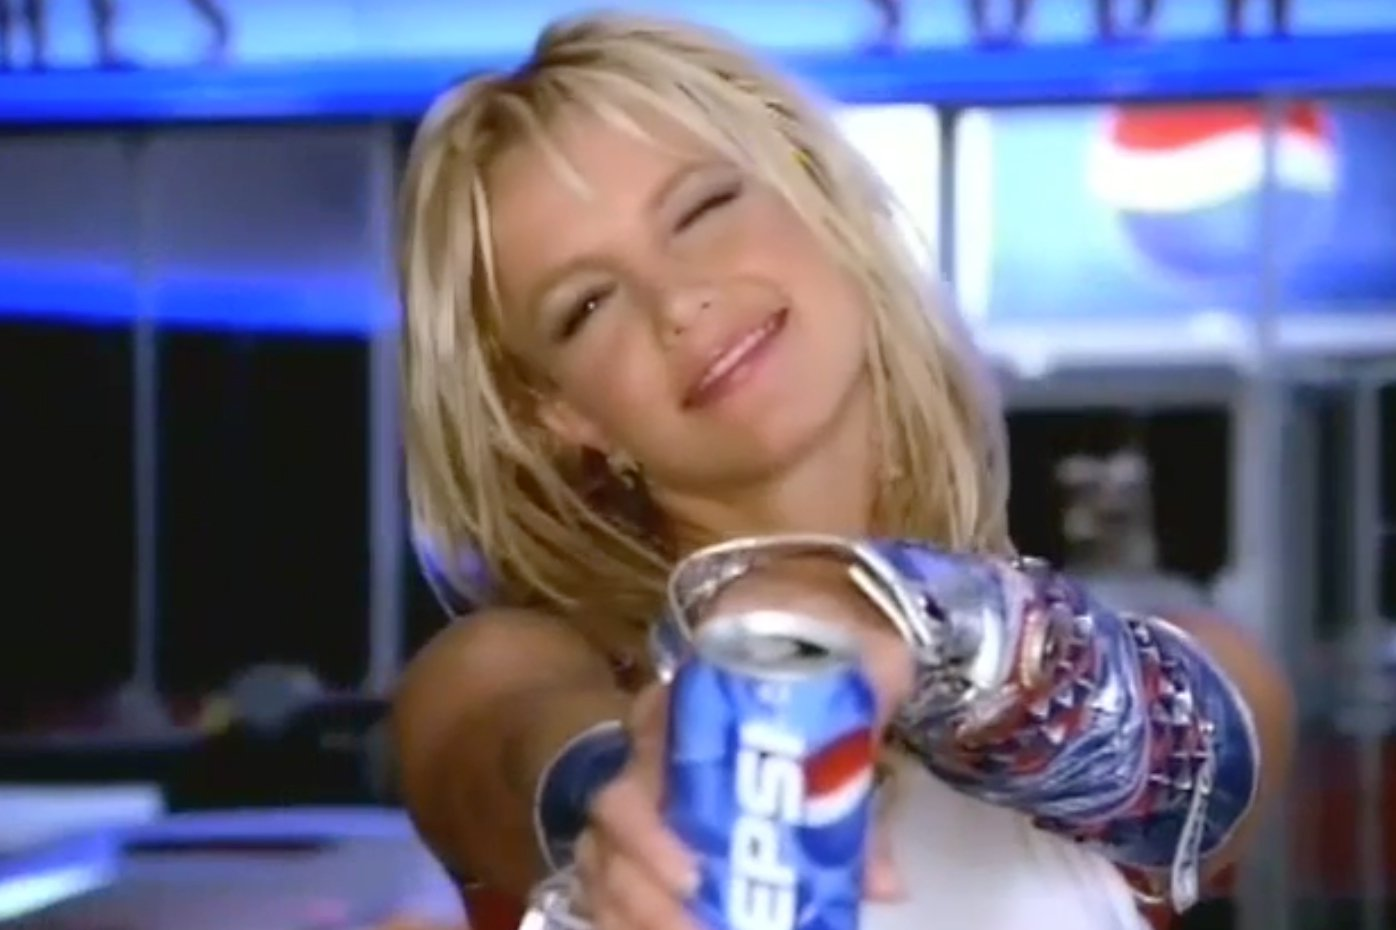 Pepsi - Now and Then